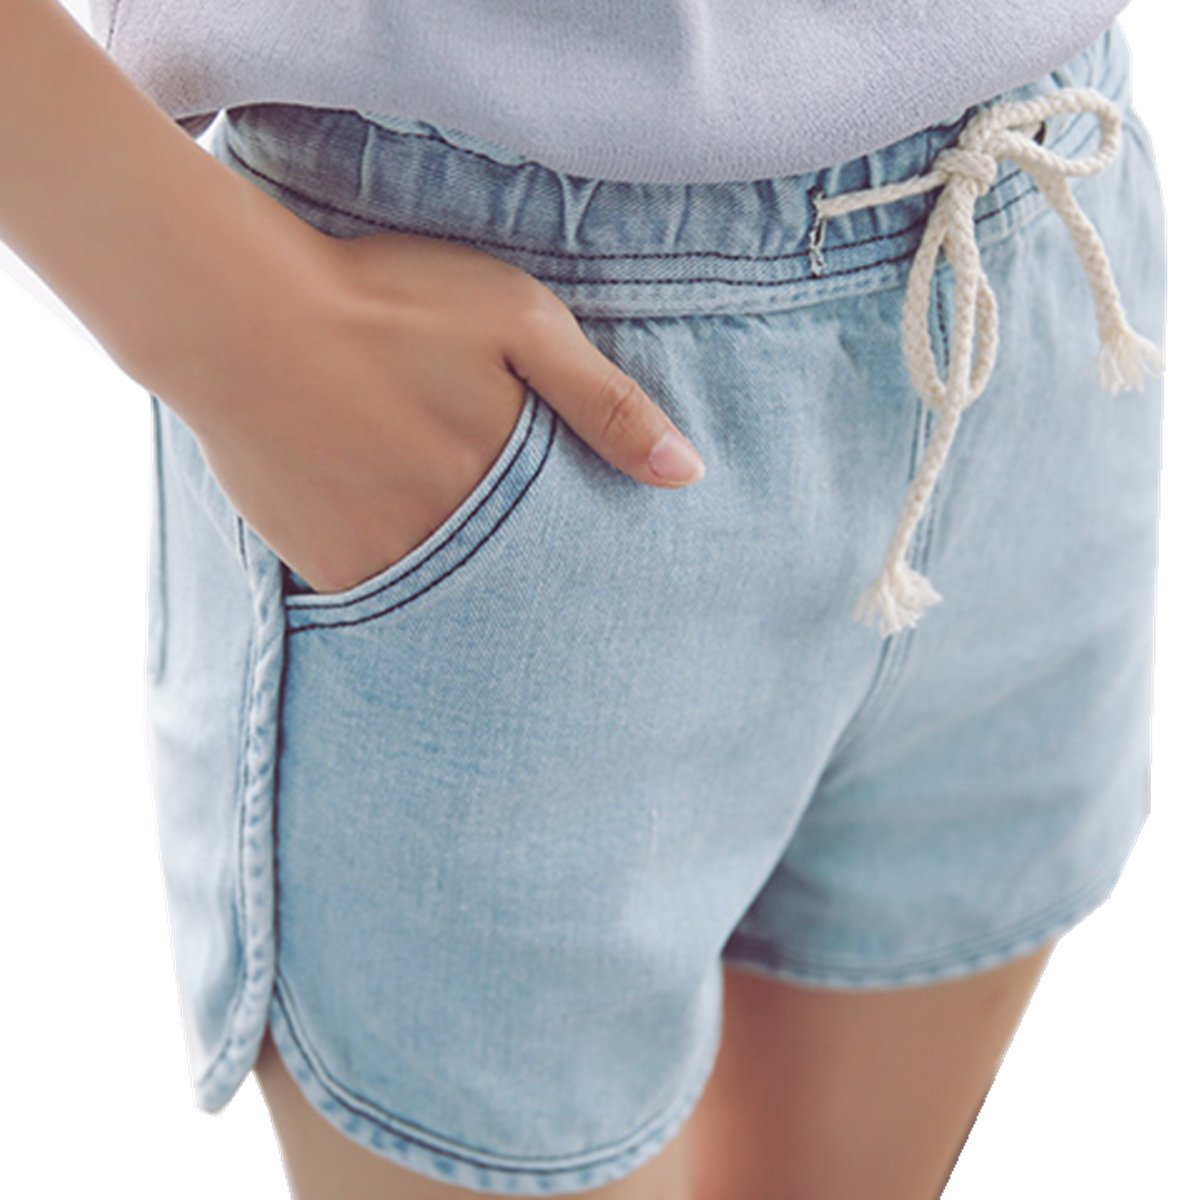 YOGLY Misses Pants Pleated Pants Classic Shorts Boxer Shorts Women s Shorts  Women s Swimming Shorts Surfing Beach Summer Flowers Pants Summer Retro Cut  ... 86a884973